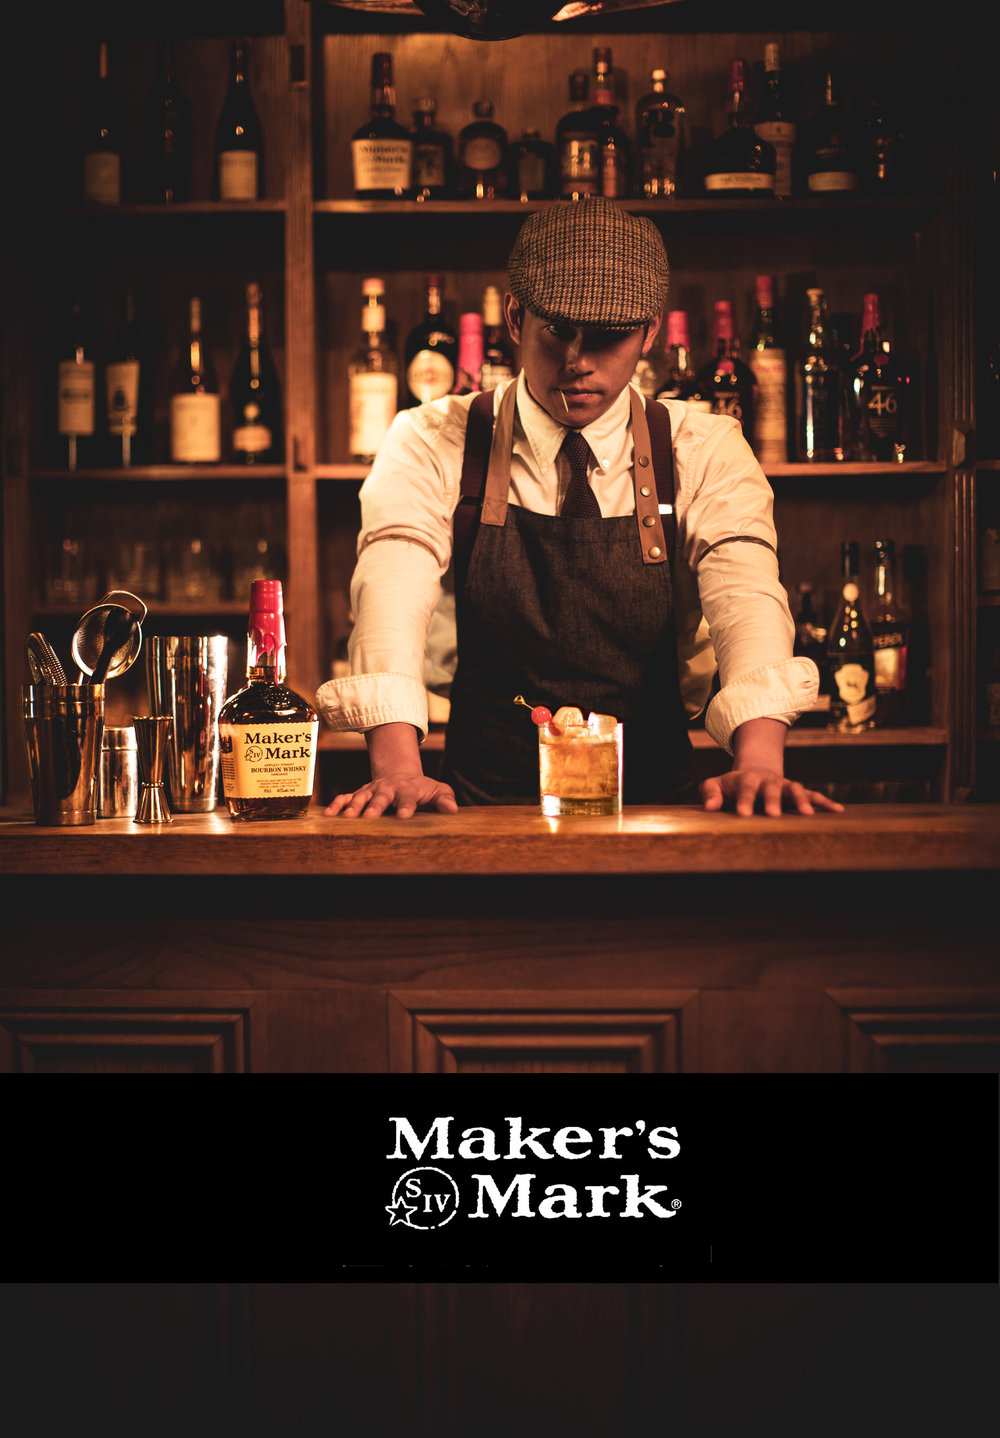 Maker's Mark Advertising